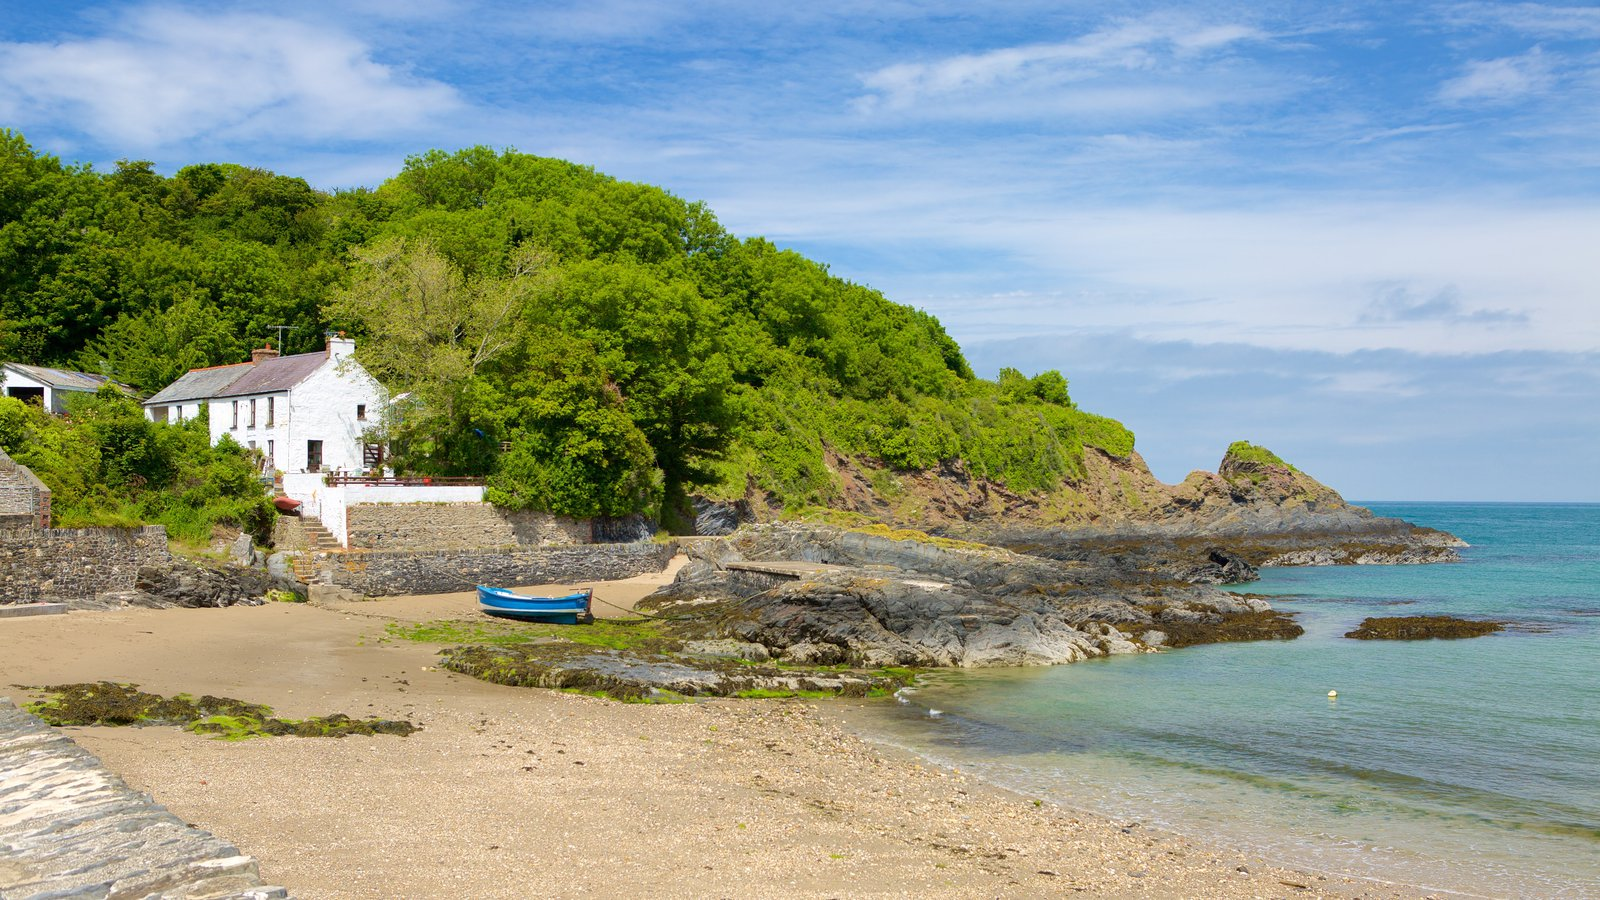 Pembrokeshire Coast National Park which includes a sandy beach, a coastal town and a pebble beach